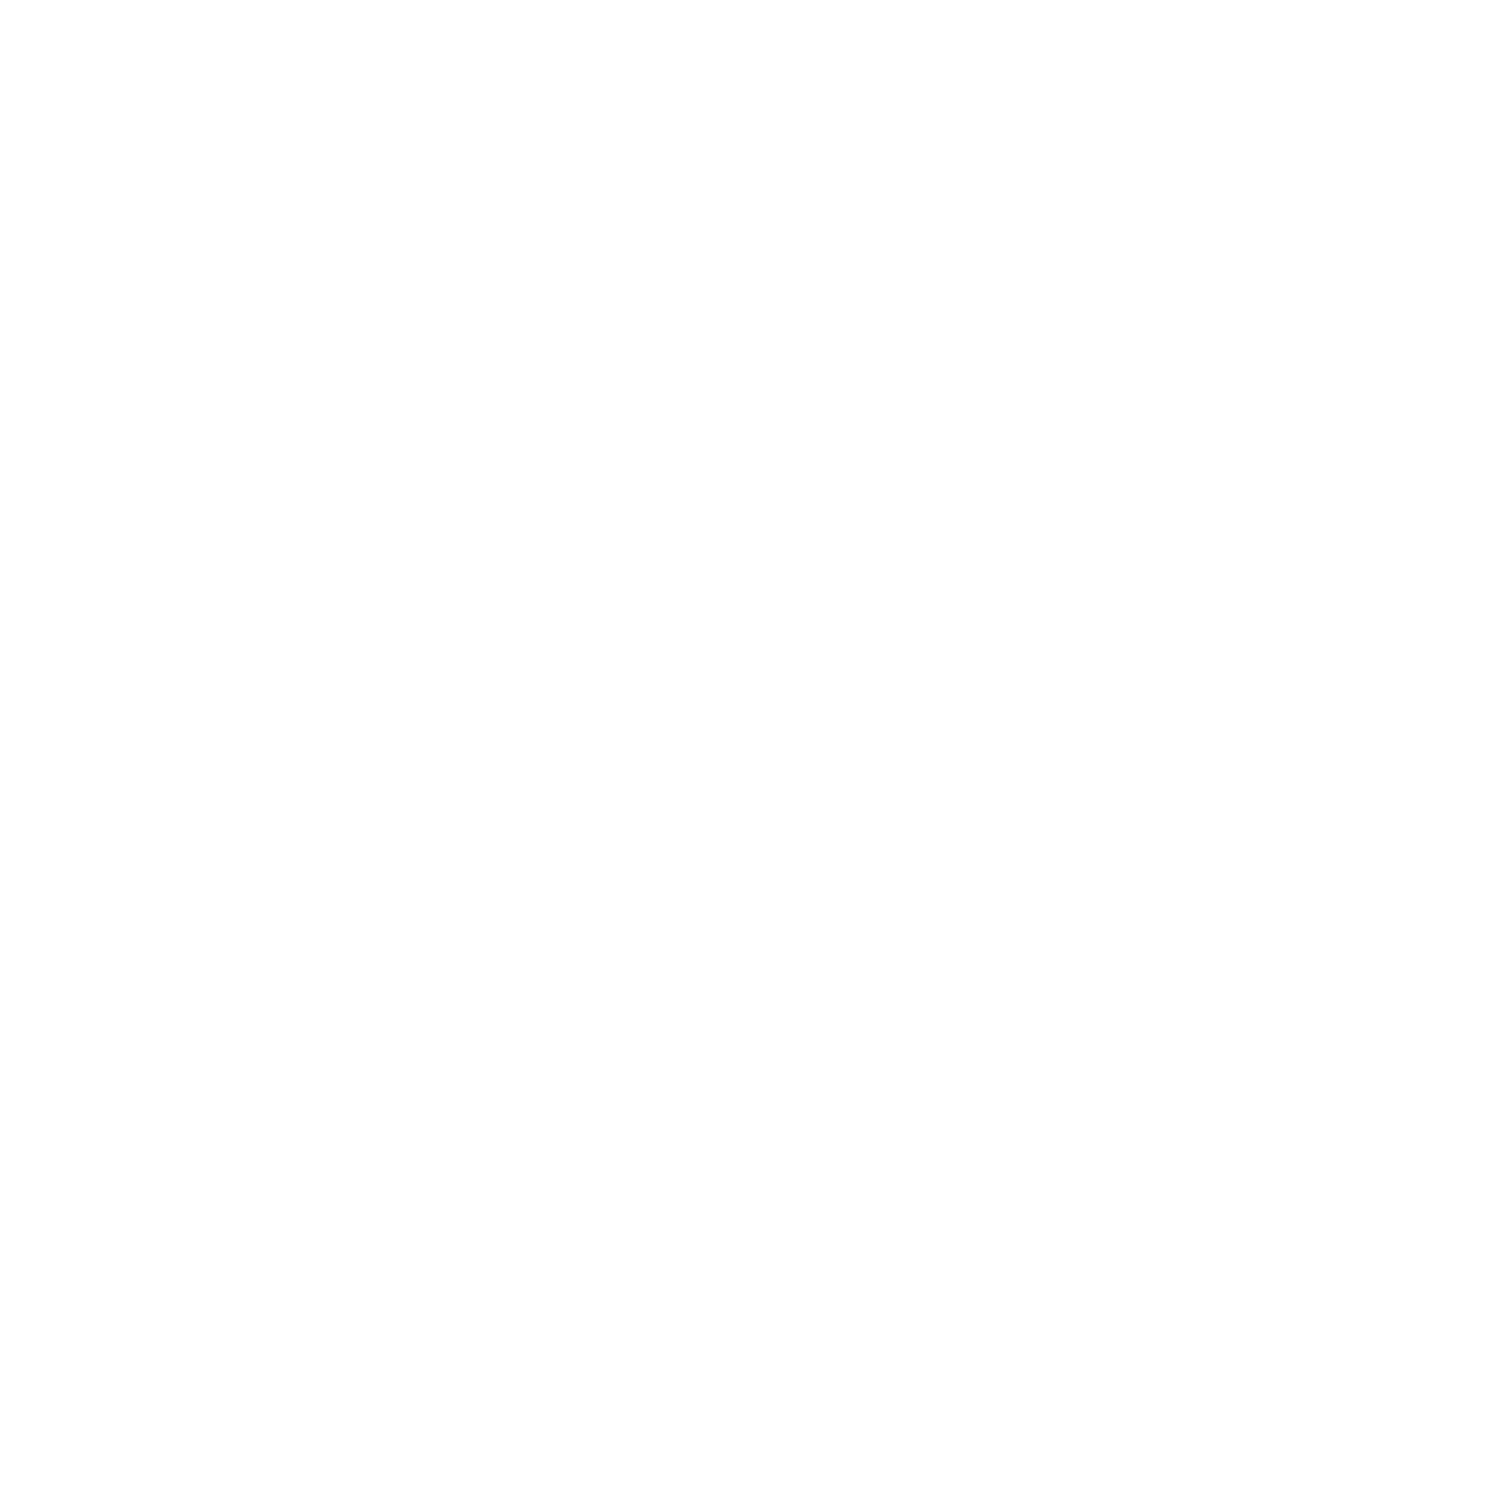 The Limes bed & breakfast